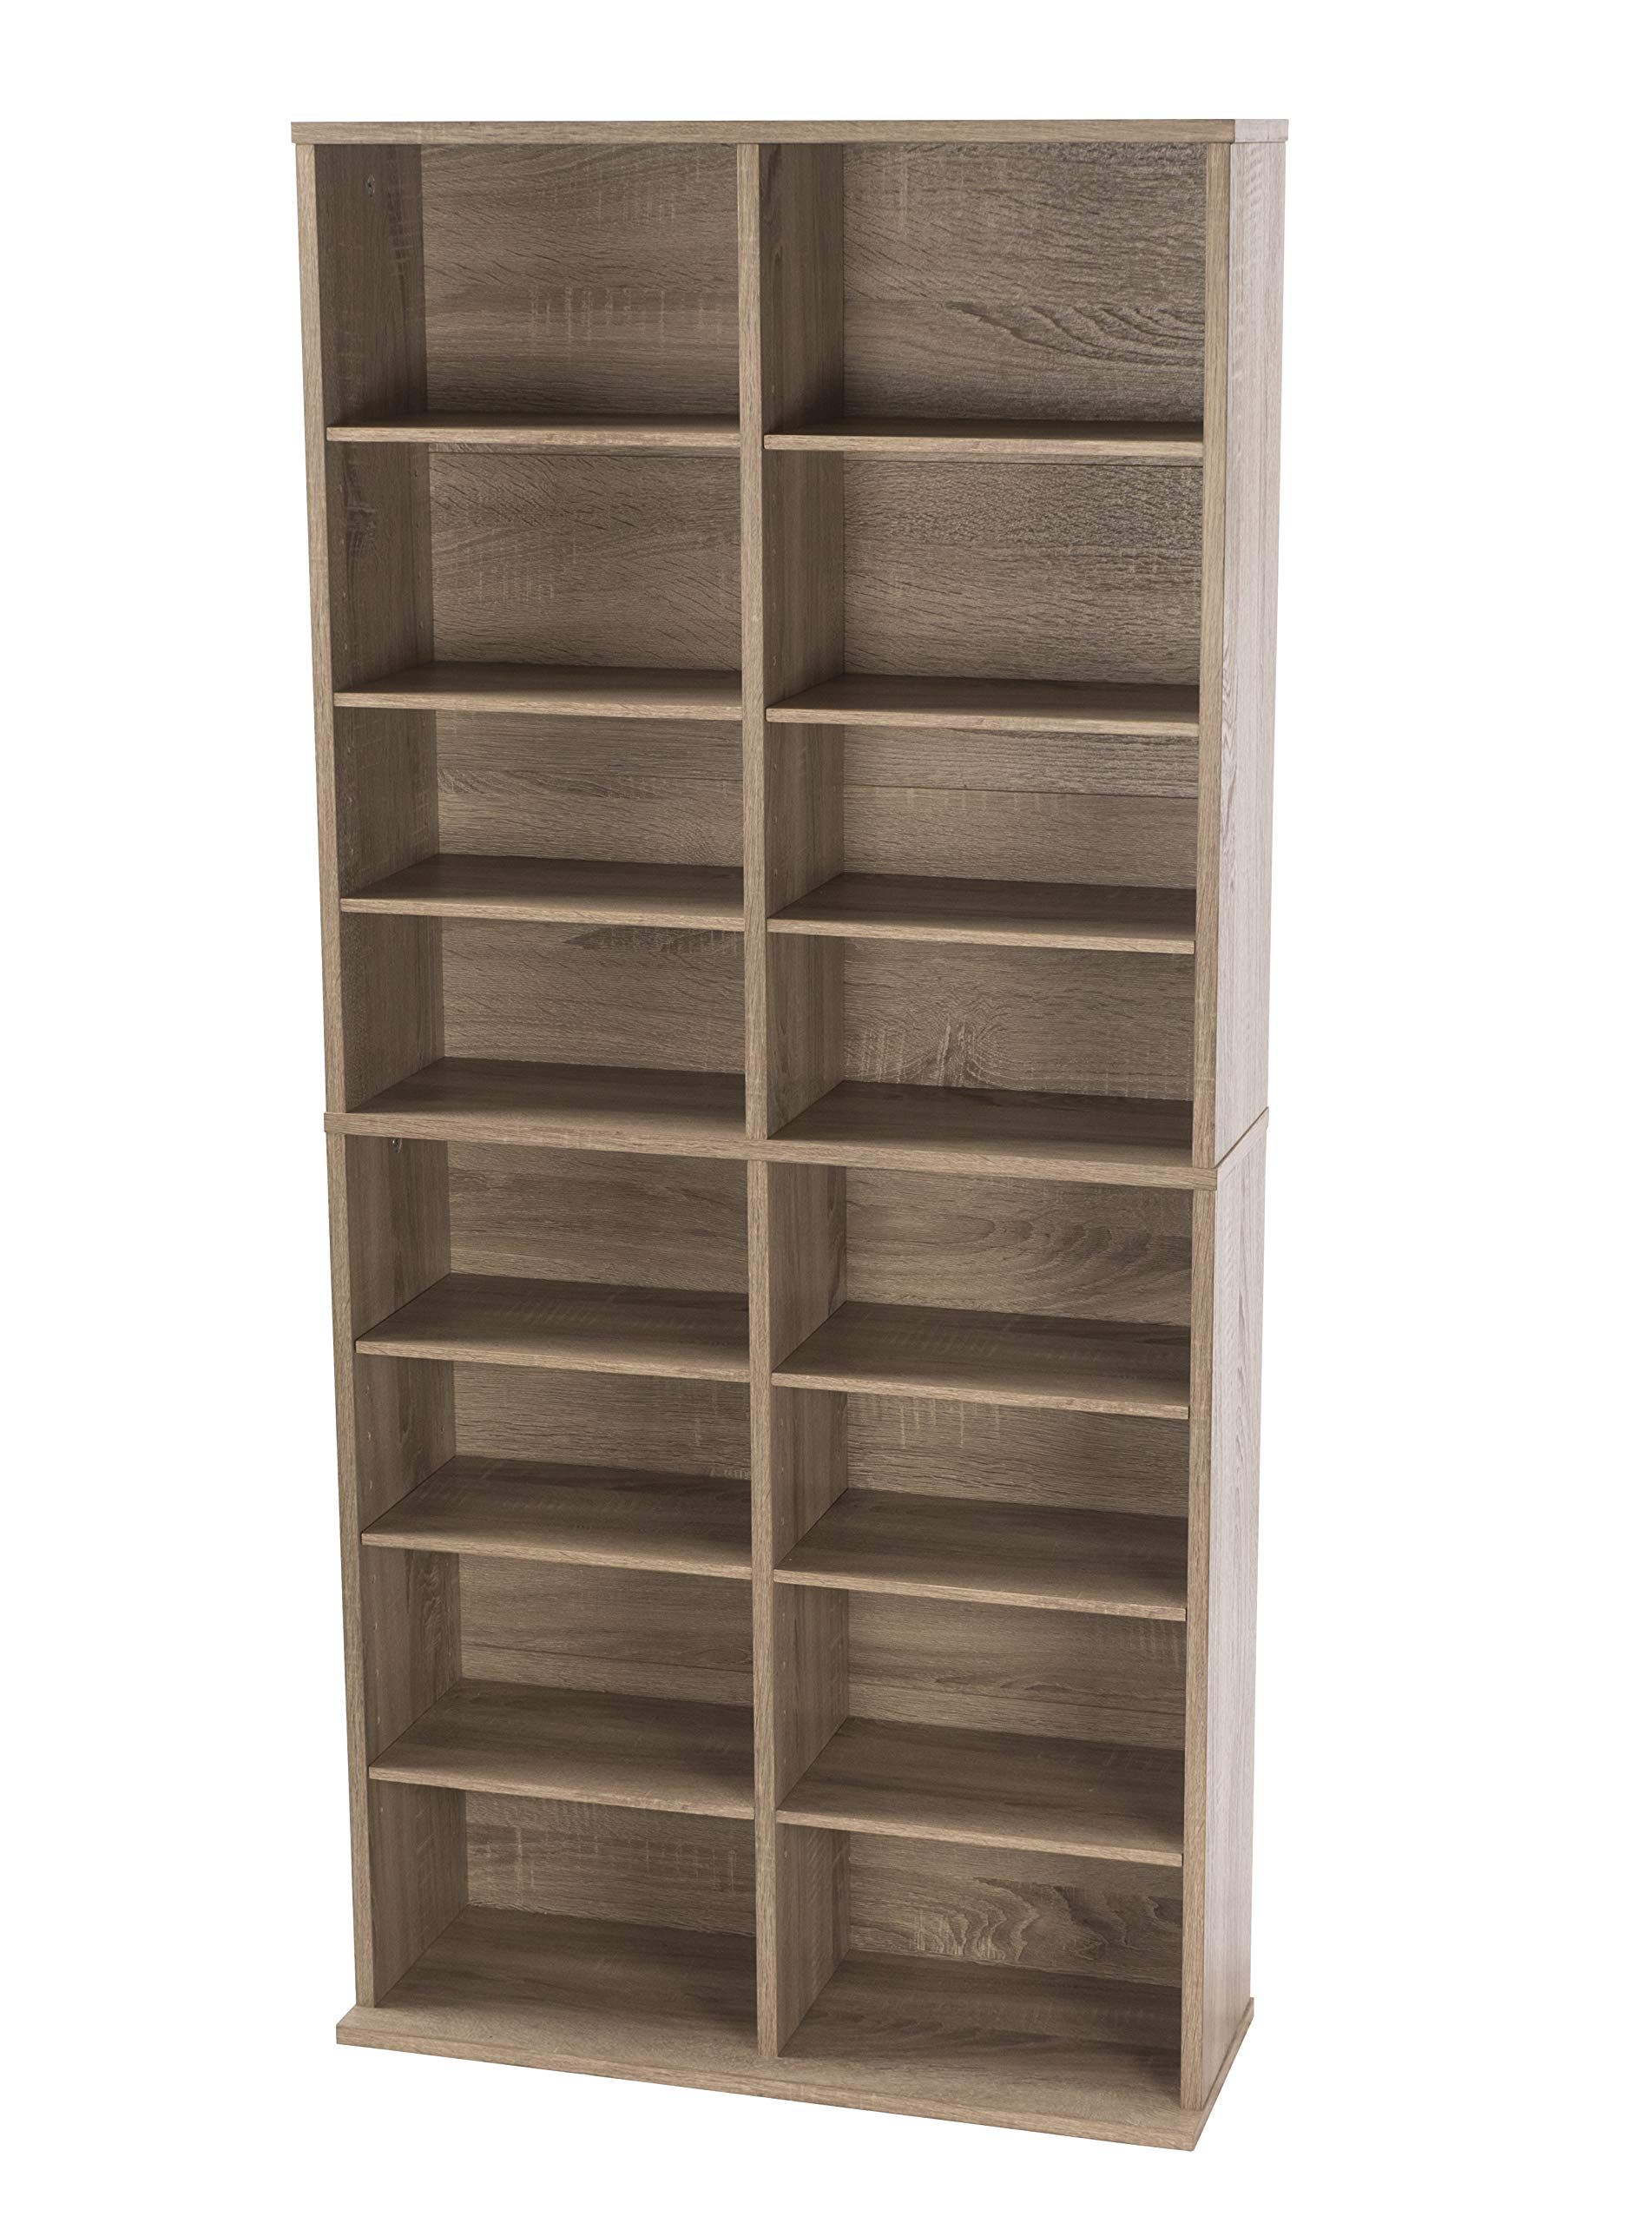 Atlantic Henley Adjustable Media Cabinet - Weather Oak, Holds 464 CDs, 228 DVDs or 276 Blu-rays, 12 Adjustable and 4 fixed shelves PN38436252 by Atlantic